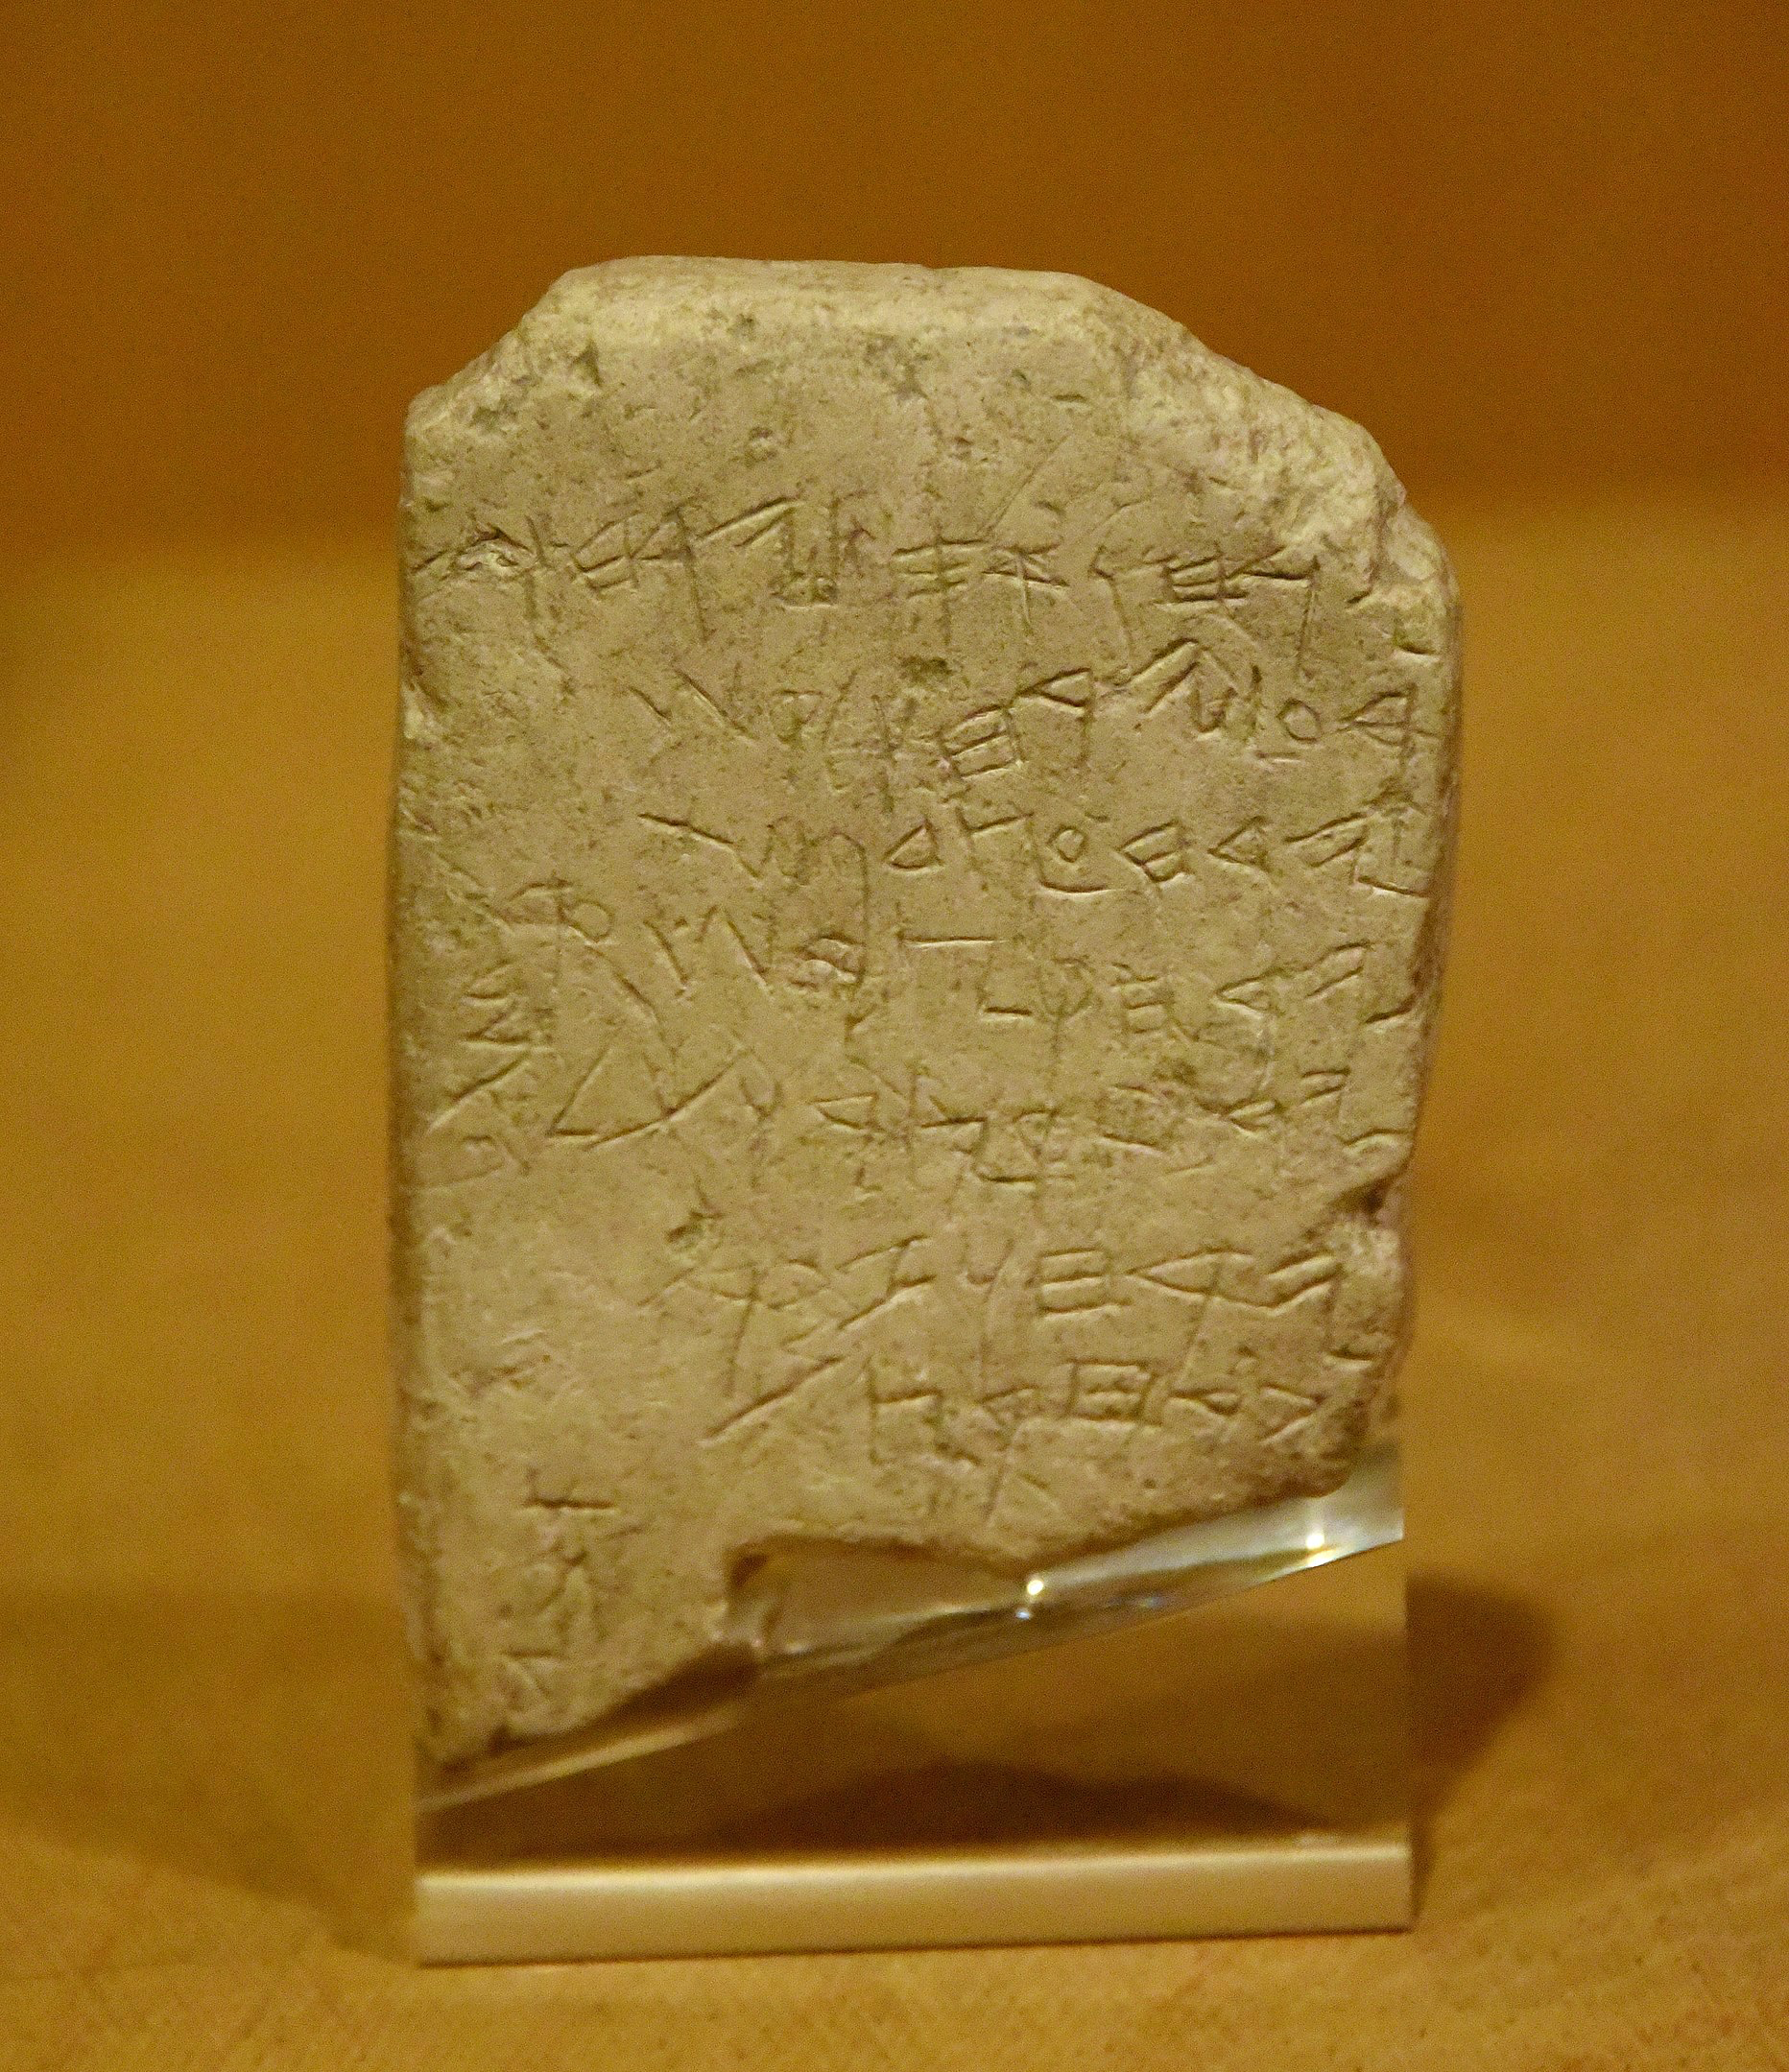 The Gezer calendar Stone is inscribed in a spidery Paleo-Hebrew script.